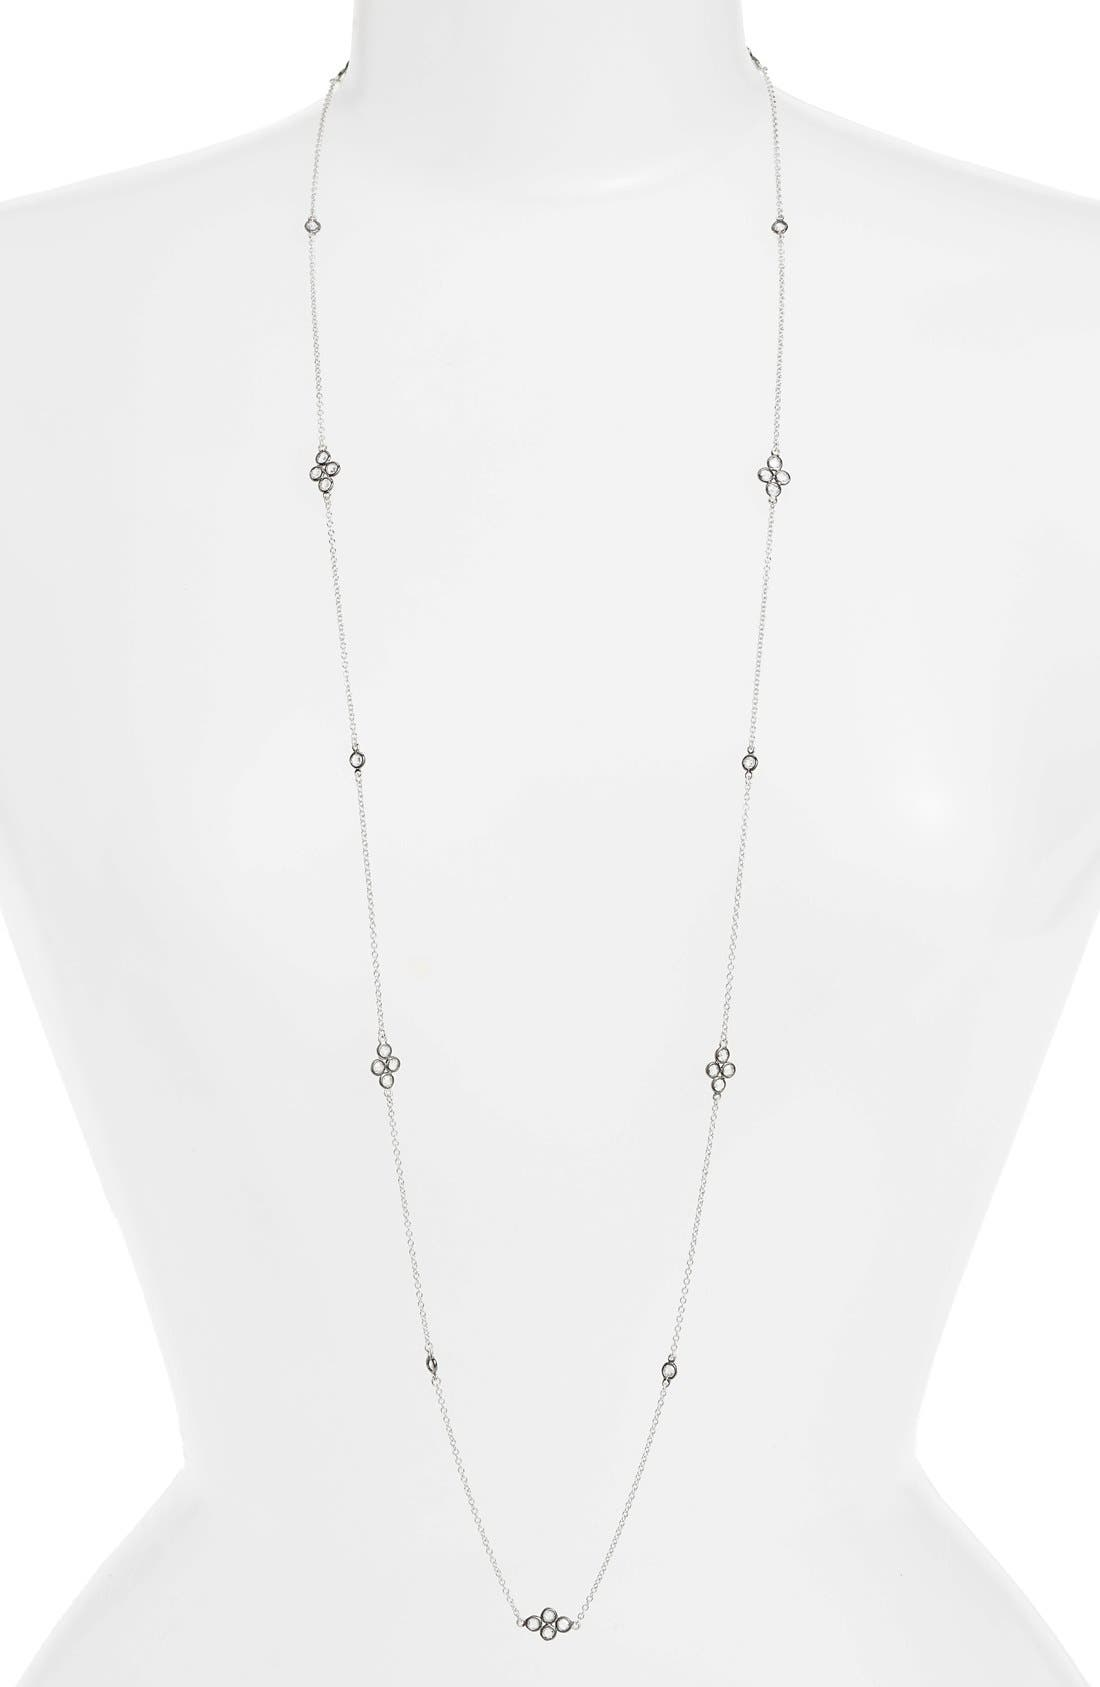 FREIDA ROTHMAN 'The Standards' Long Station Necklace